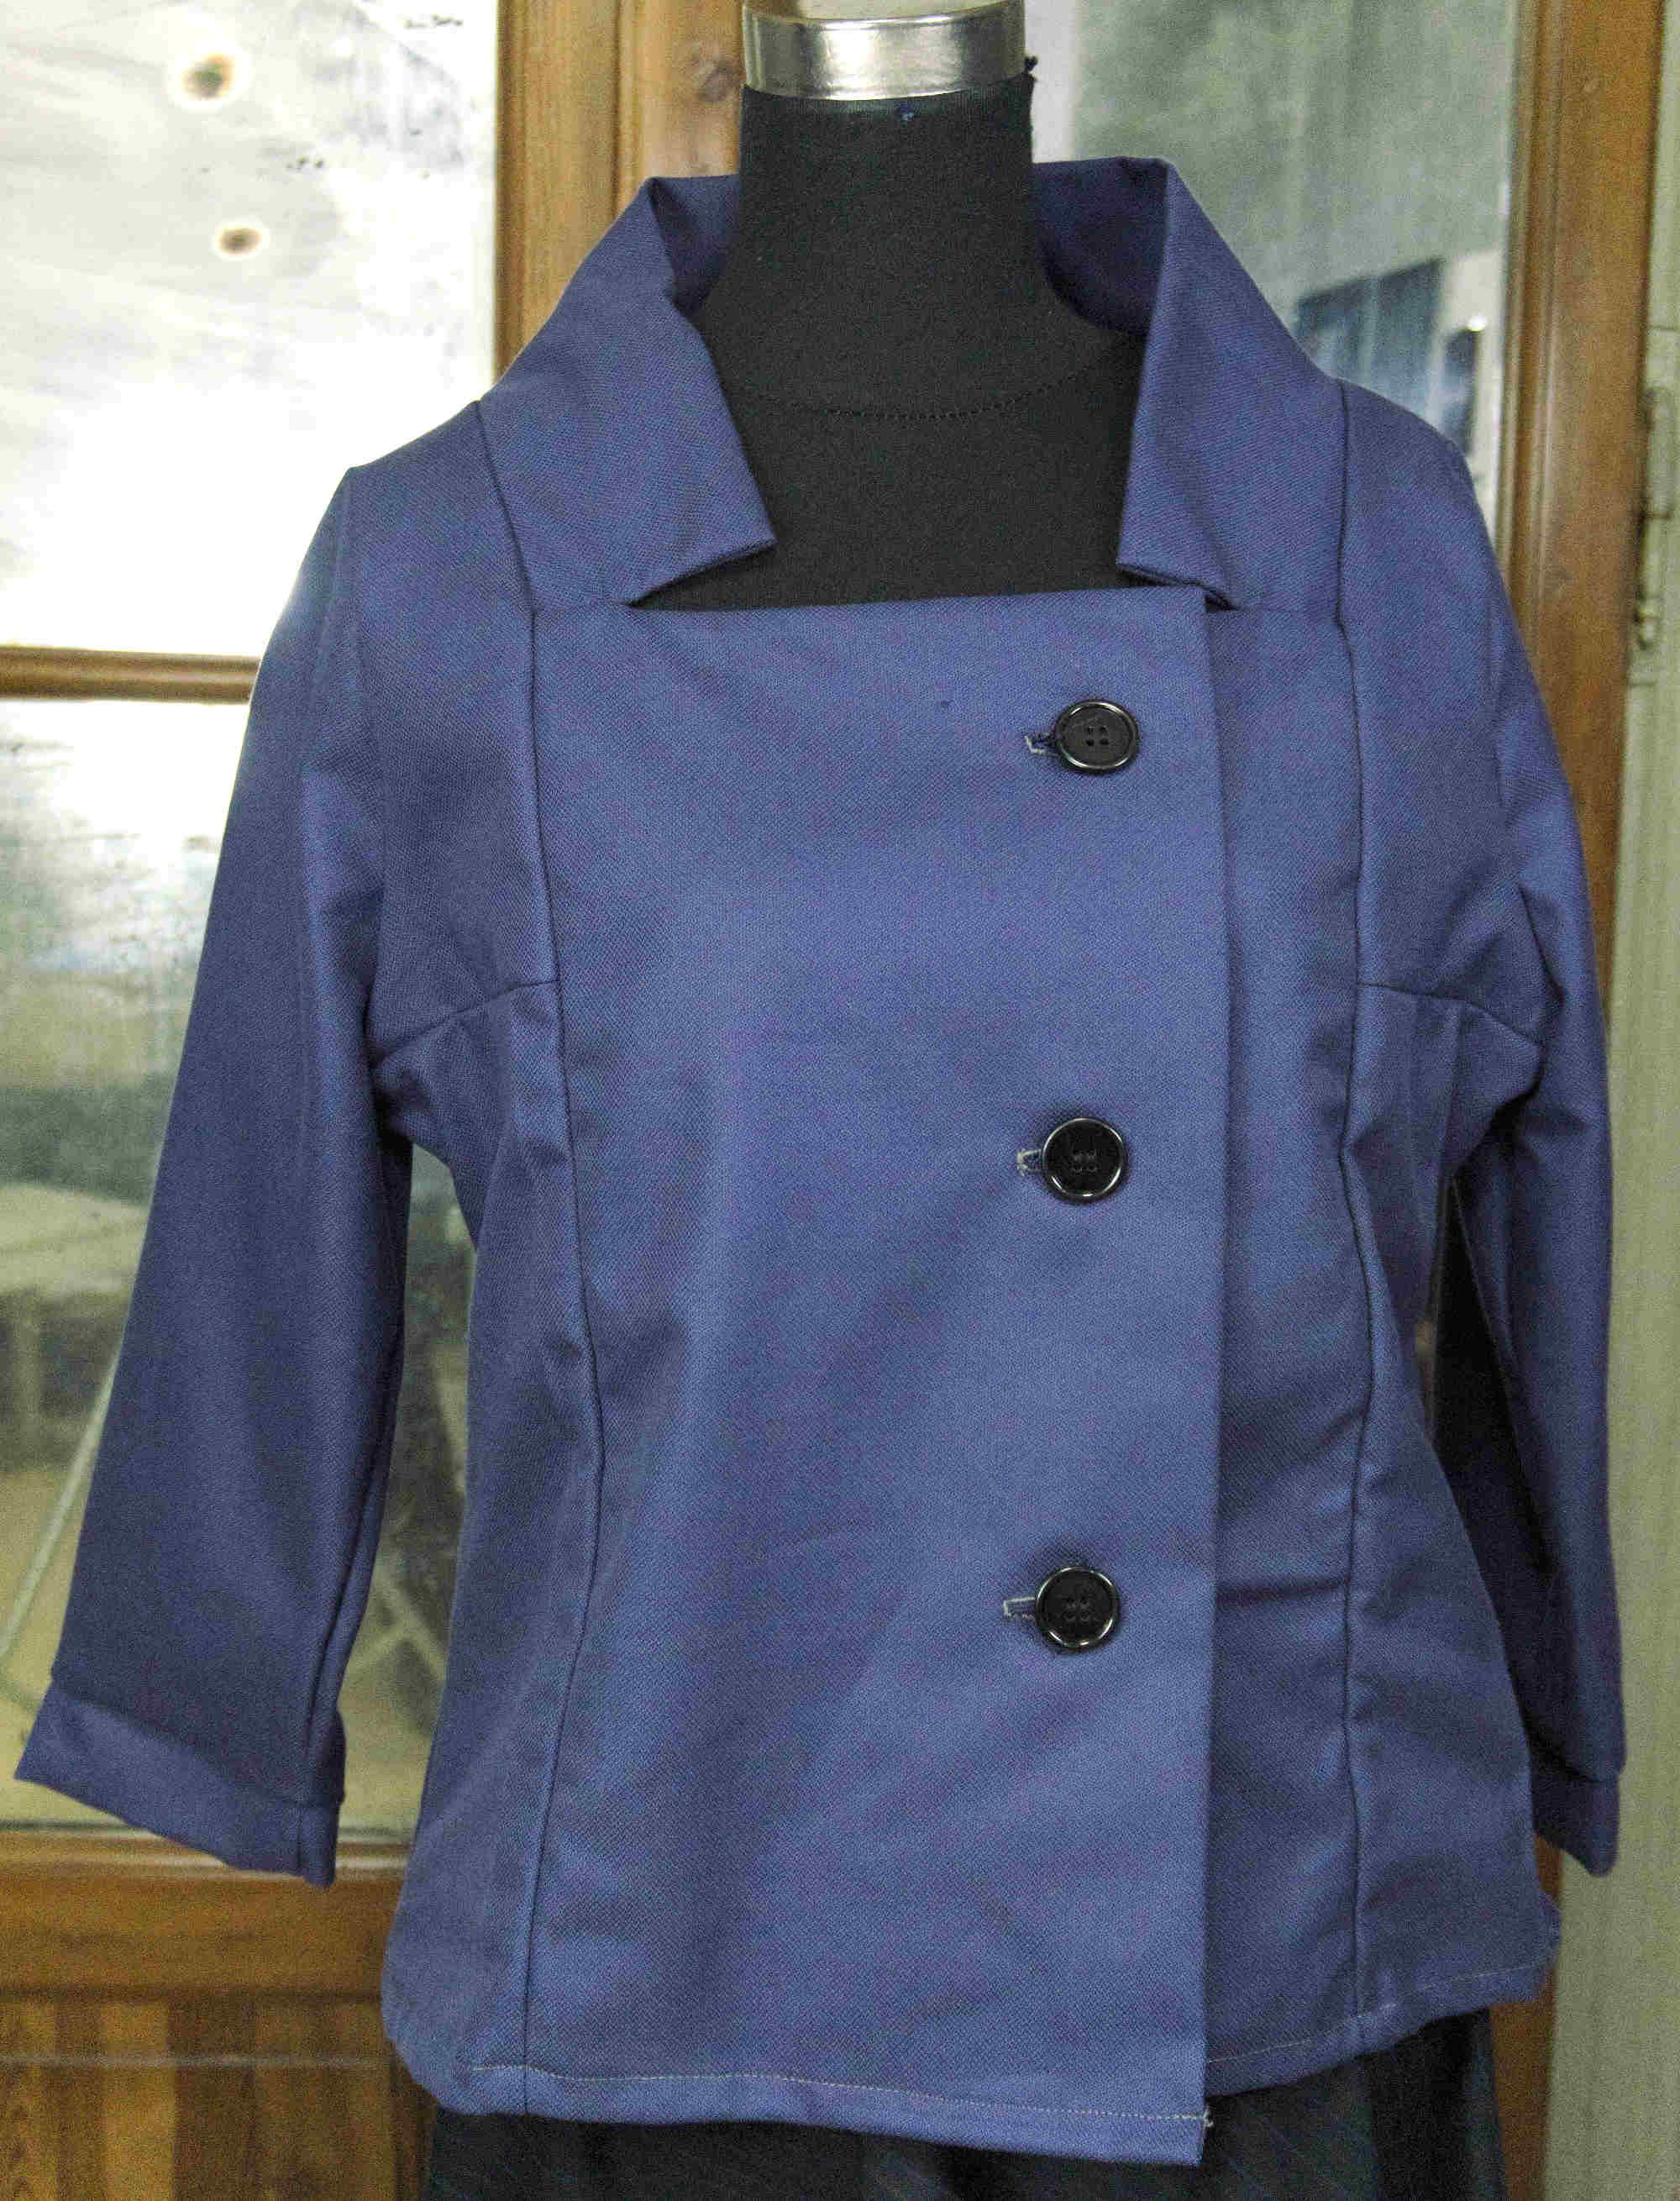 jacket with square neck